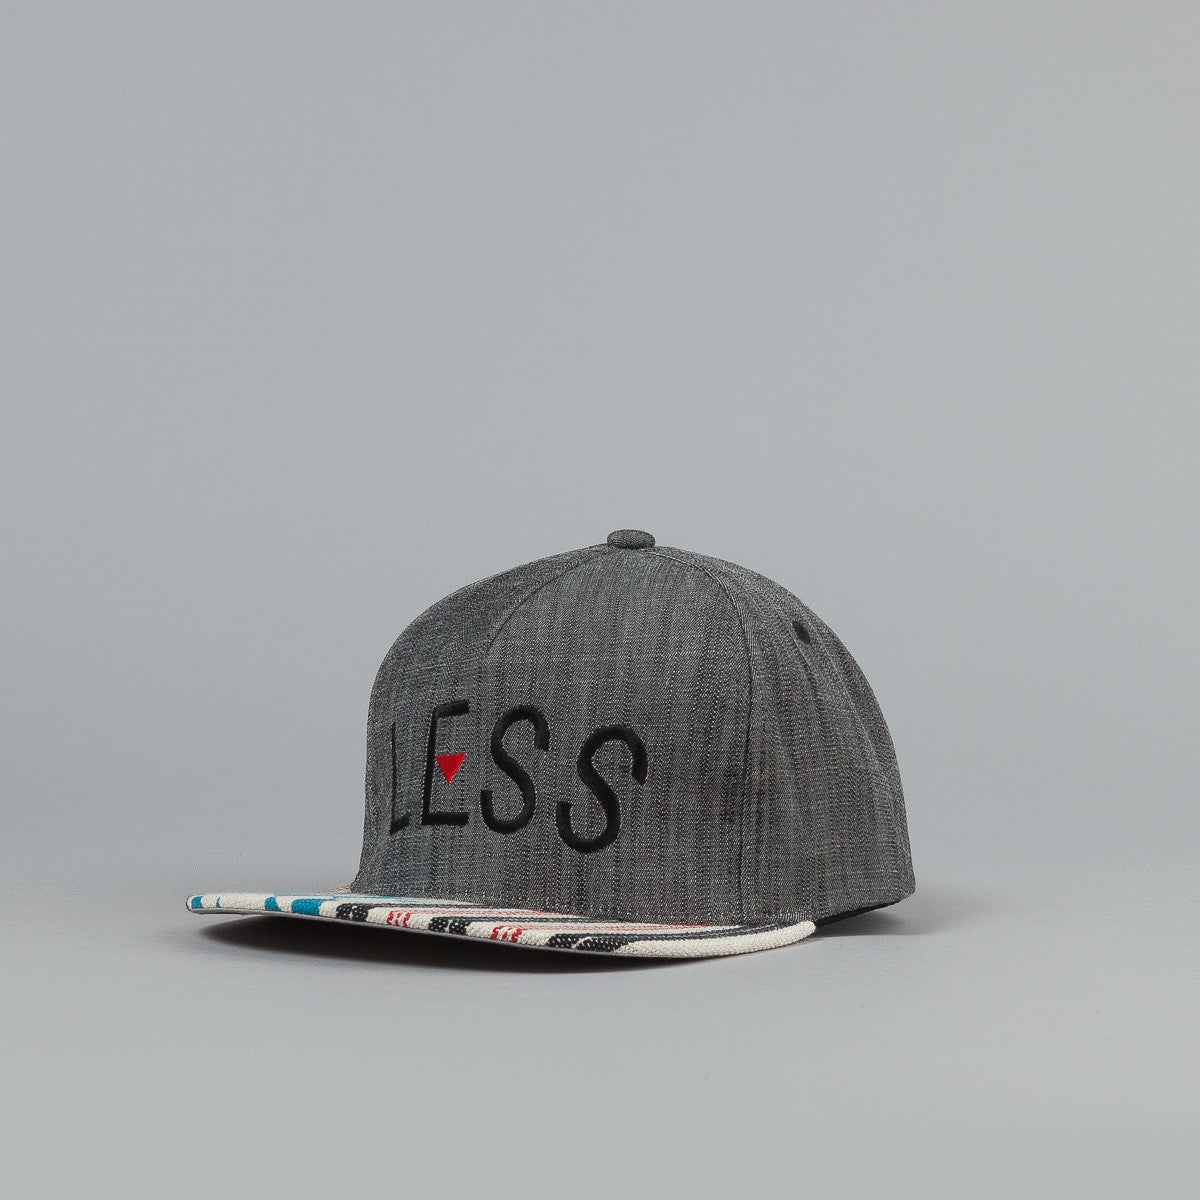 Less Arch Work Hat Native / Black